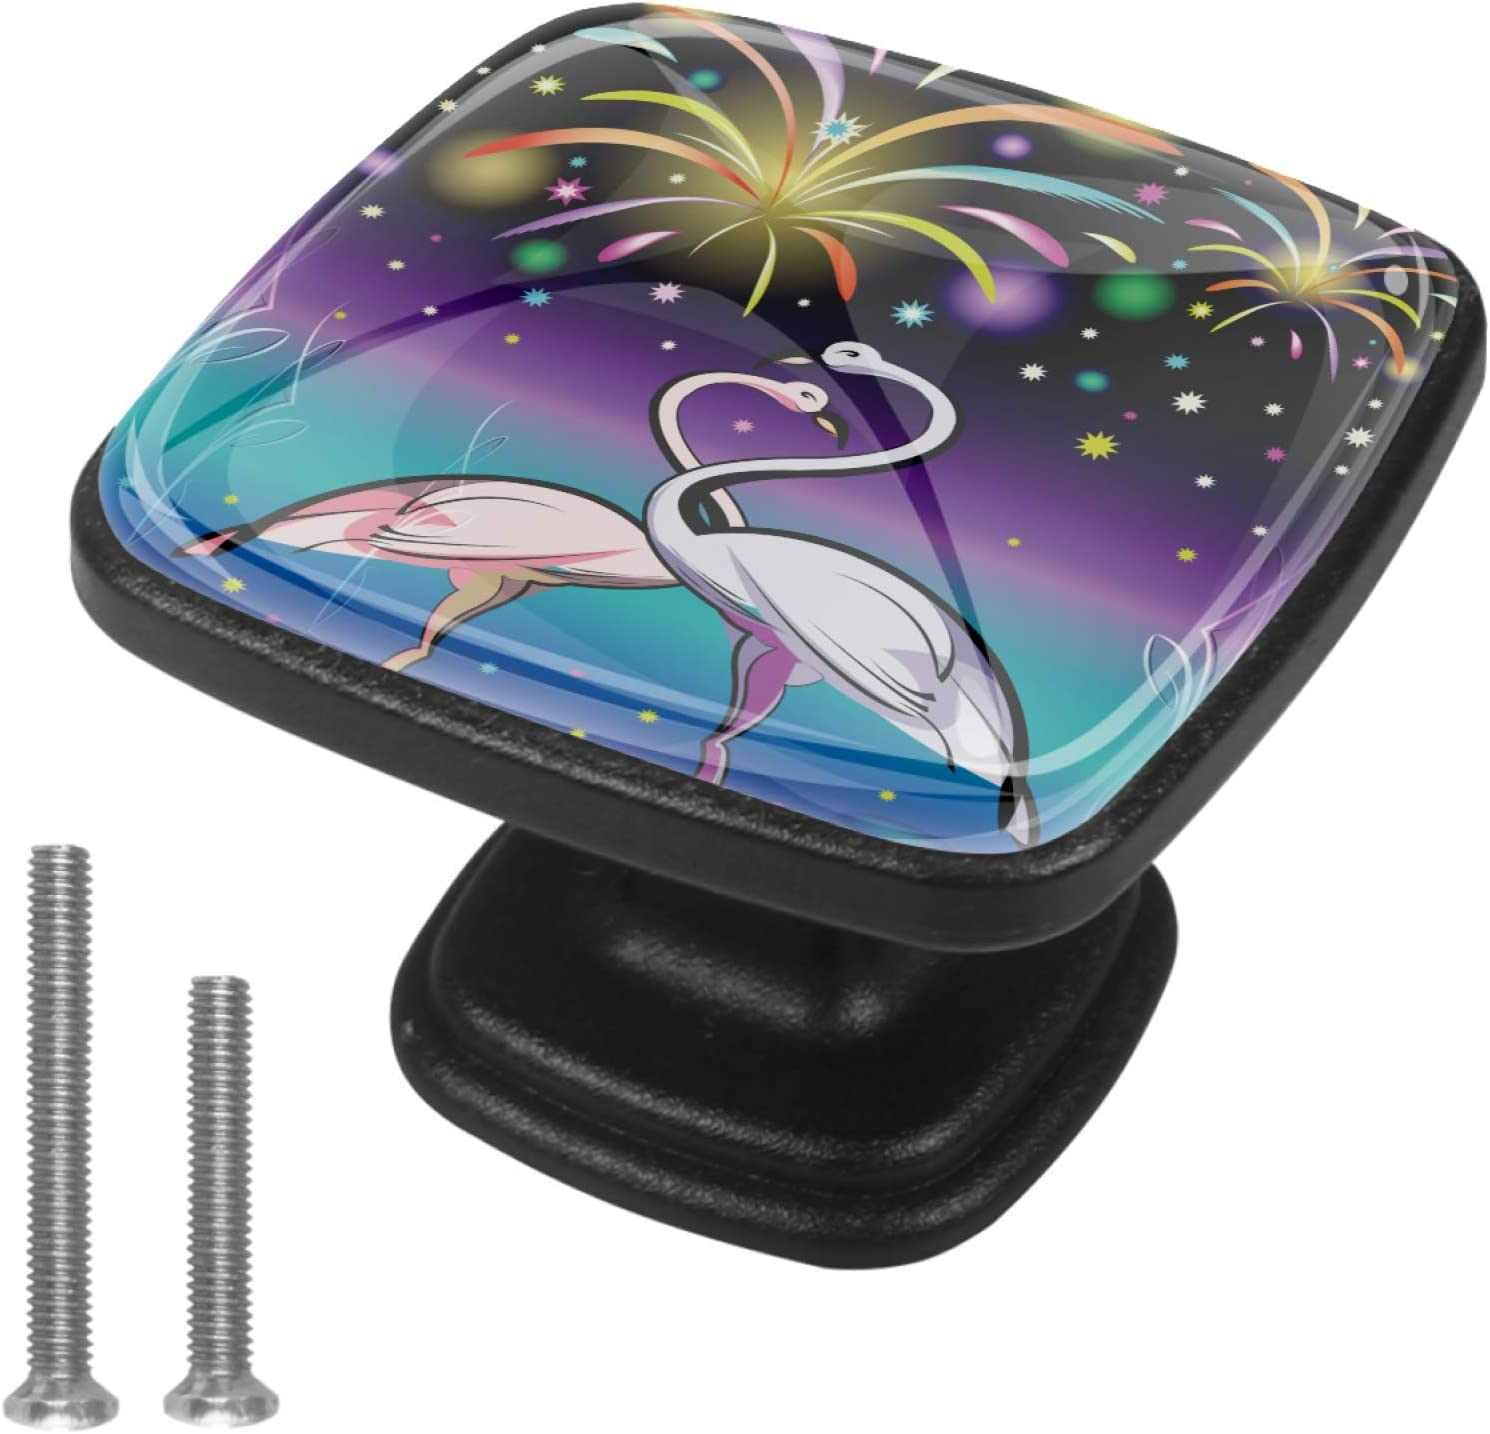 Round Cabinet Cheap mail order specialty store Hardware Knob 4 Excellent Star Pack - Flamingo Firework